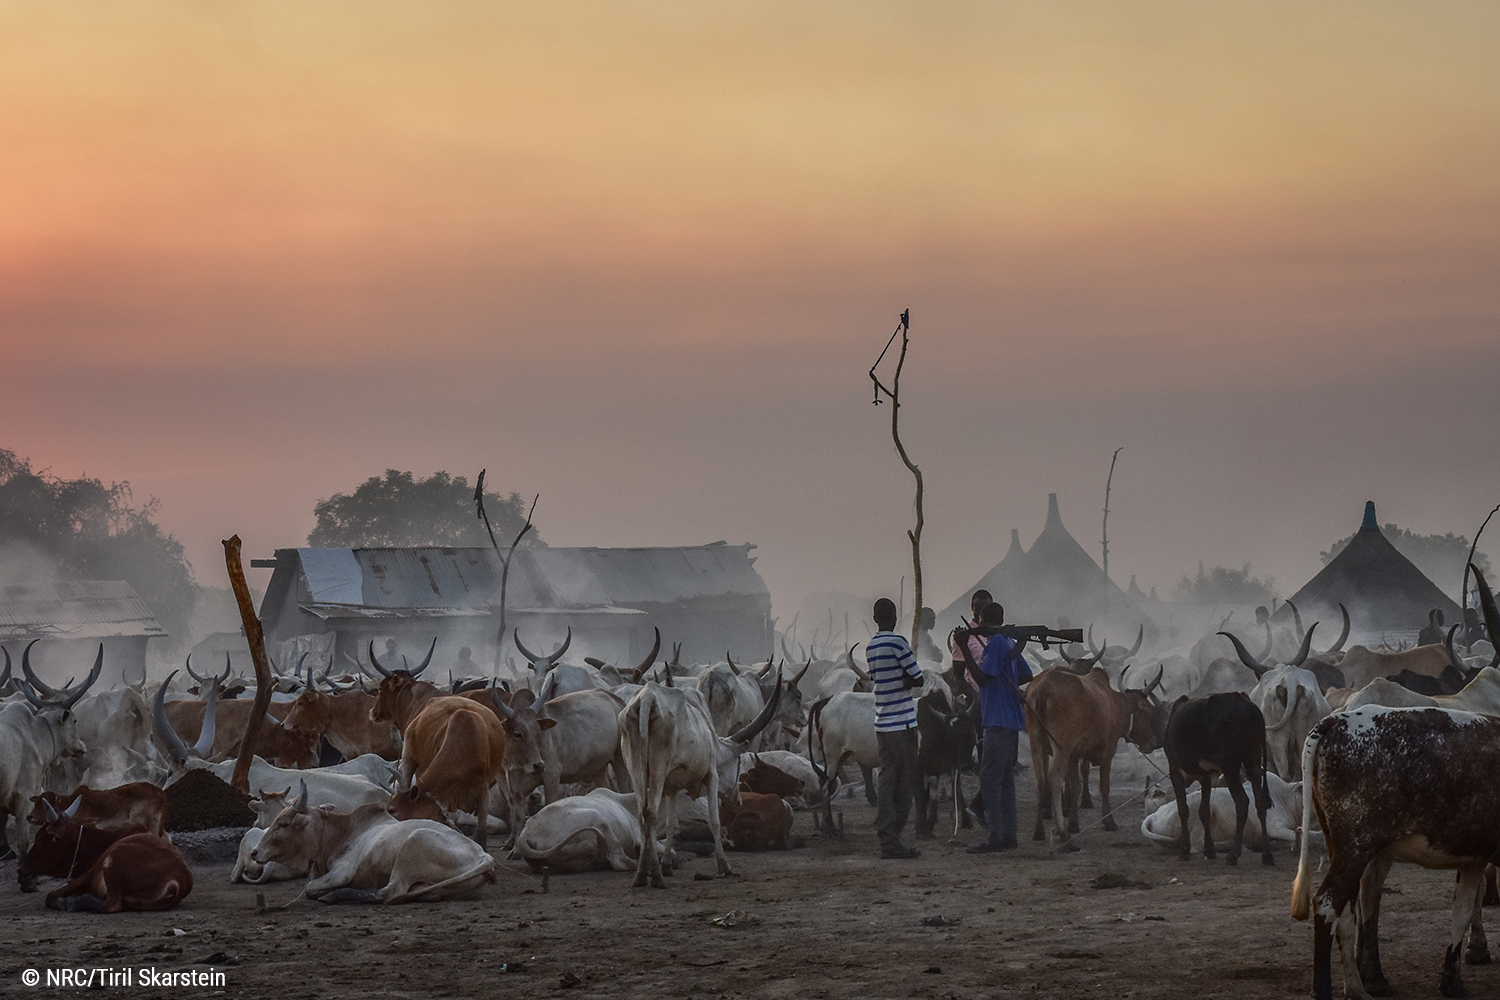 south_sudan_photo_nrc_tiril_skarstein.png